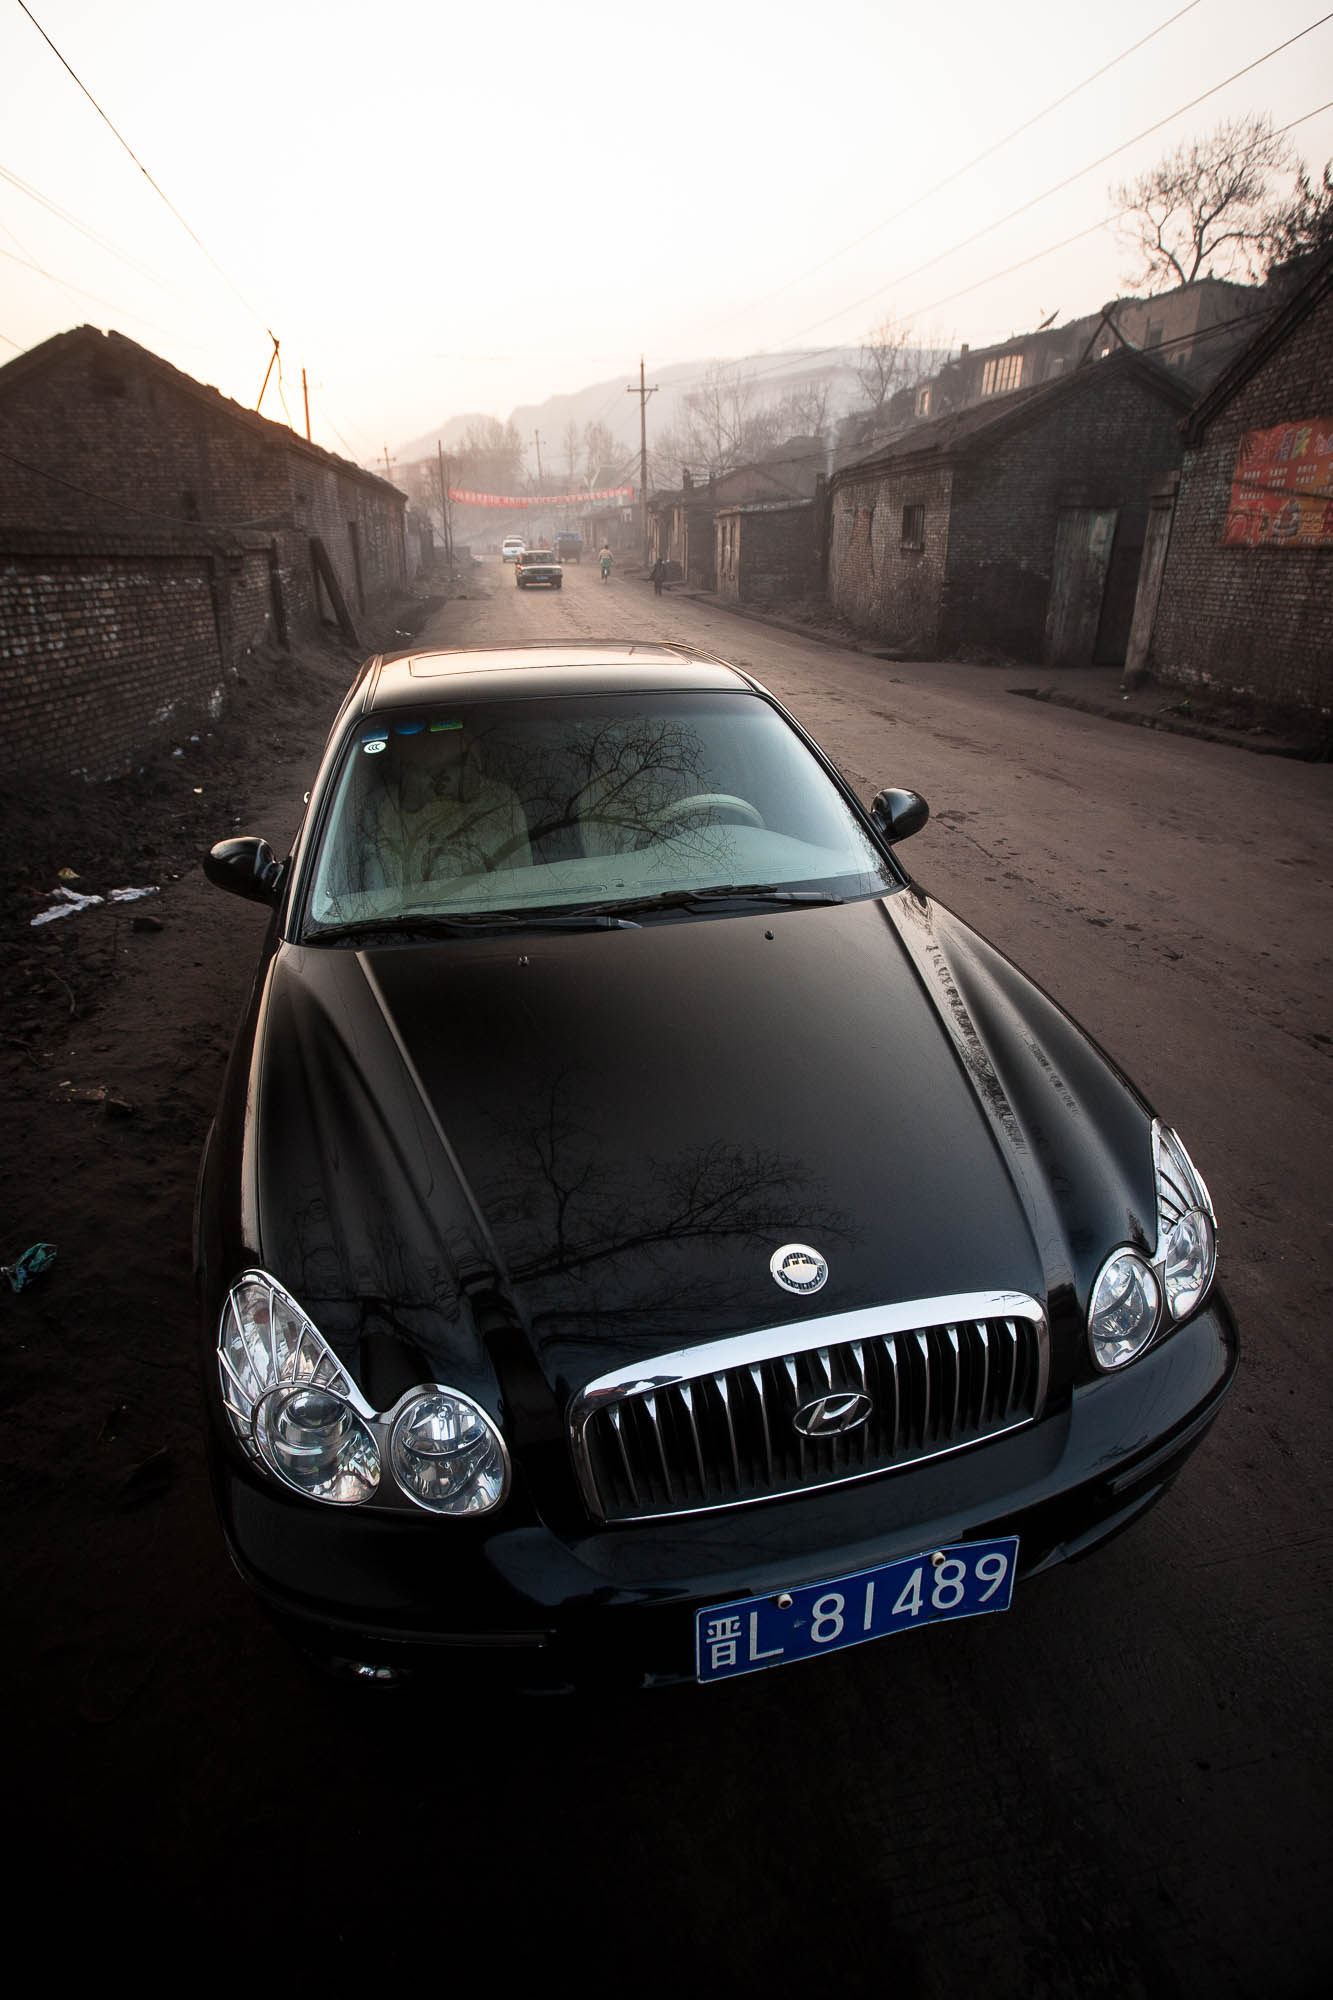 limousine in Shanxi